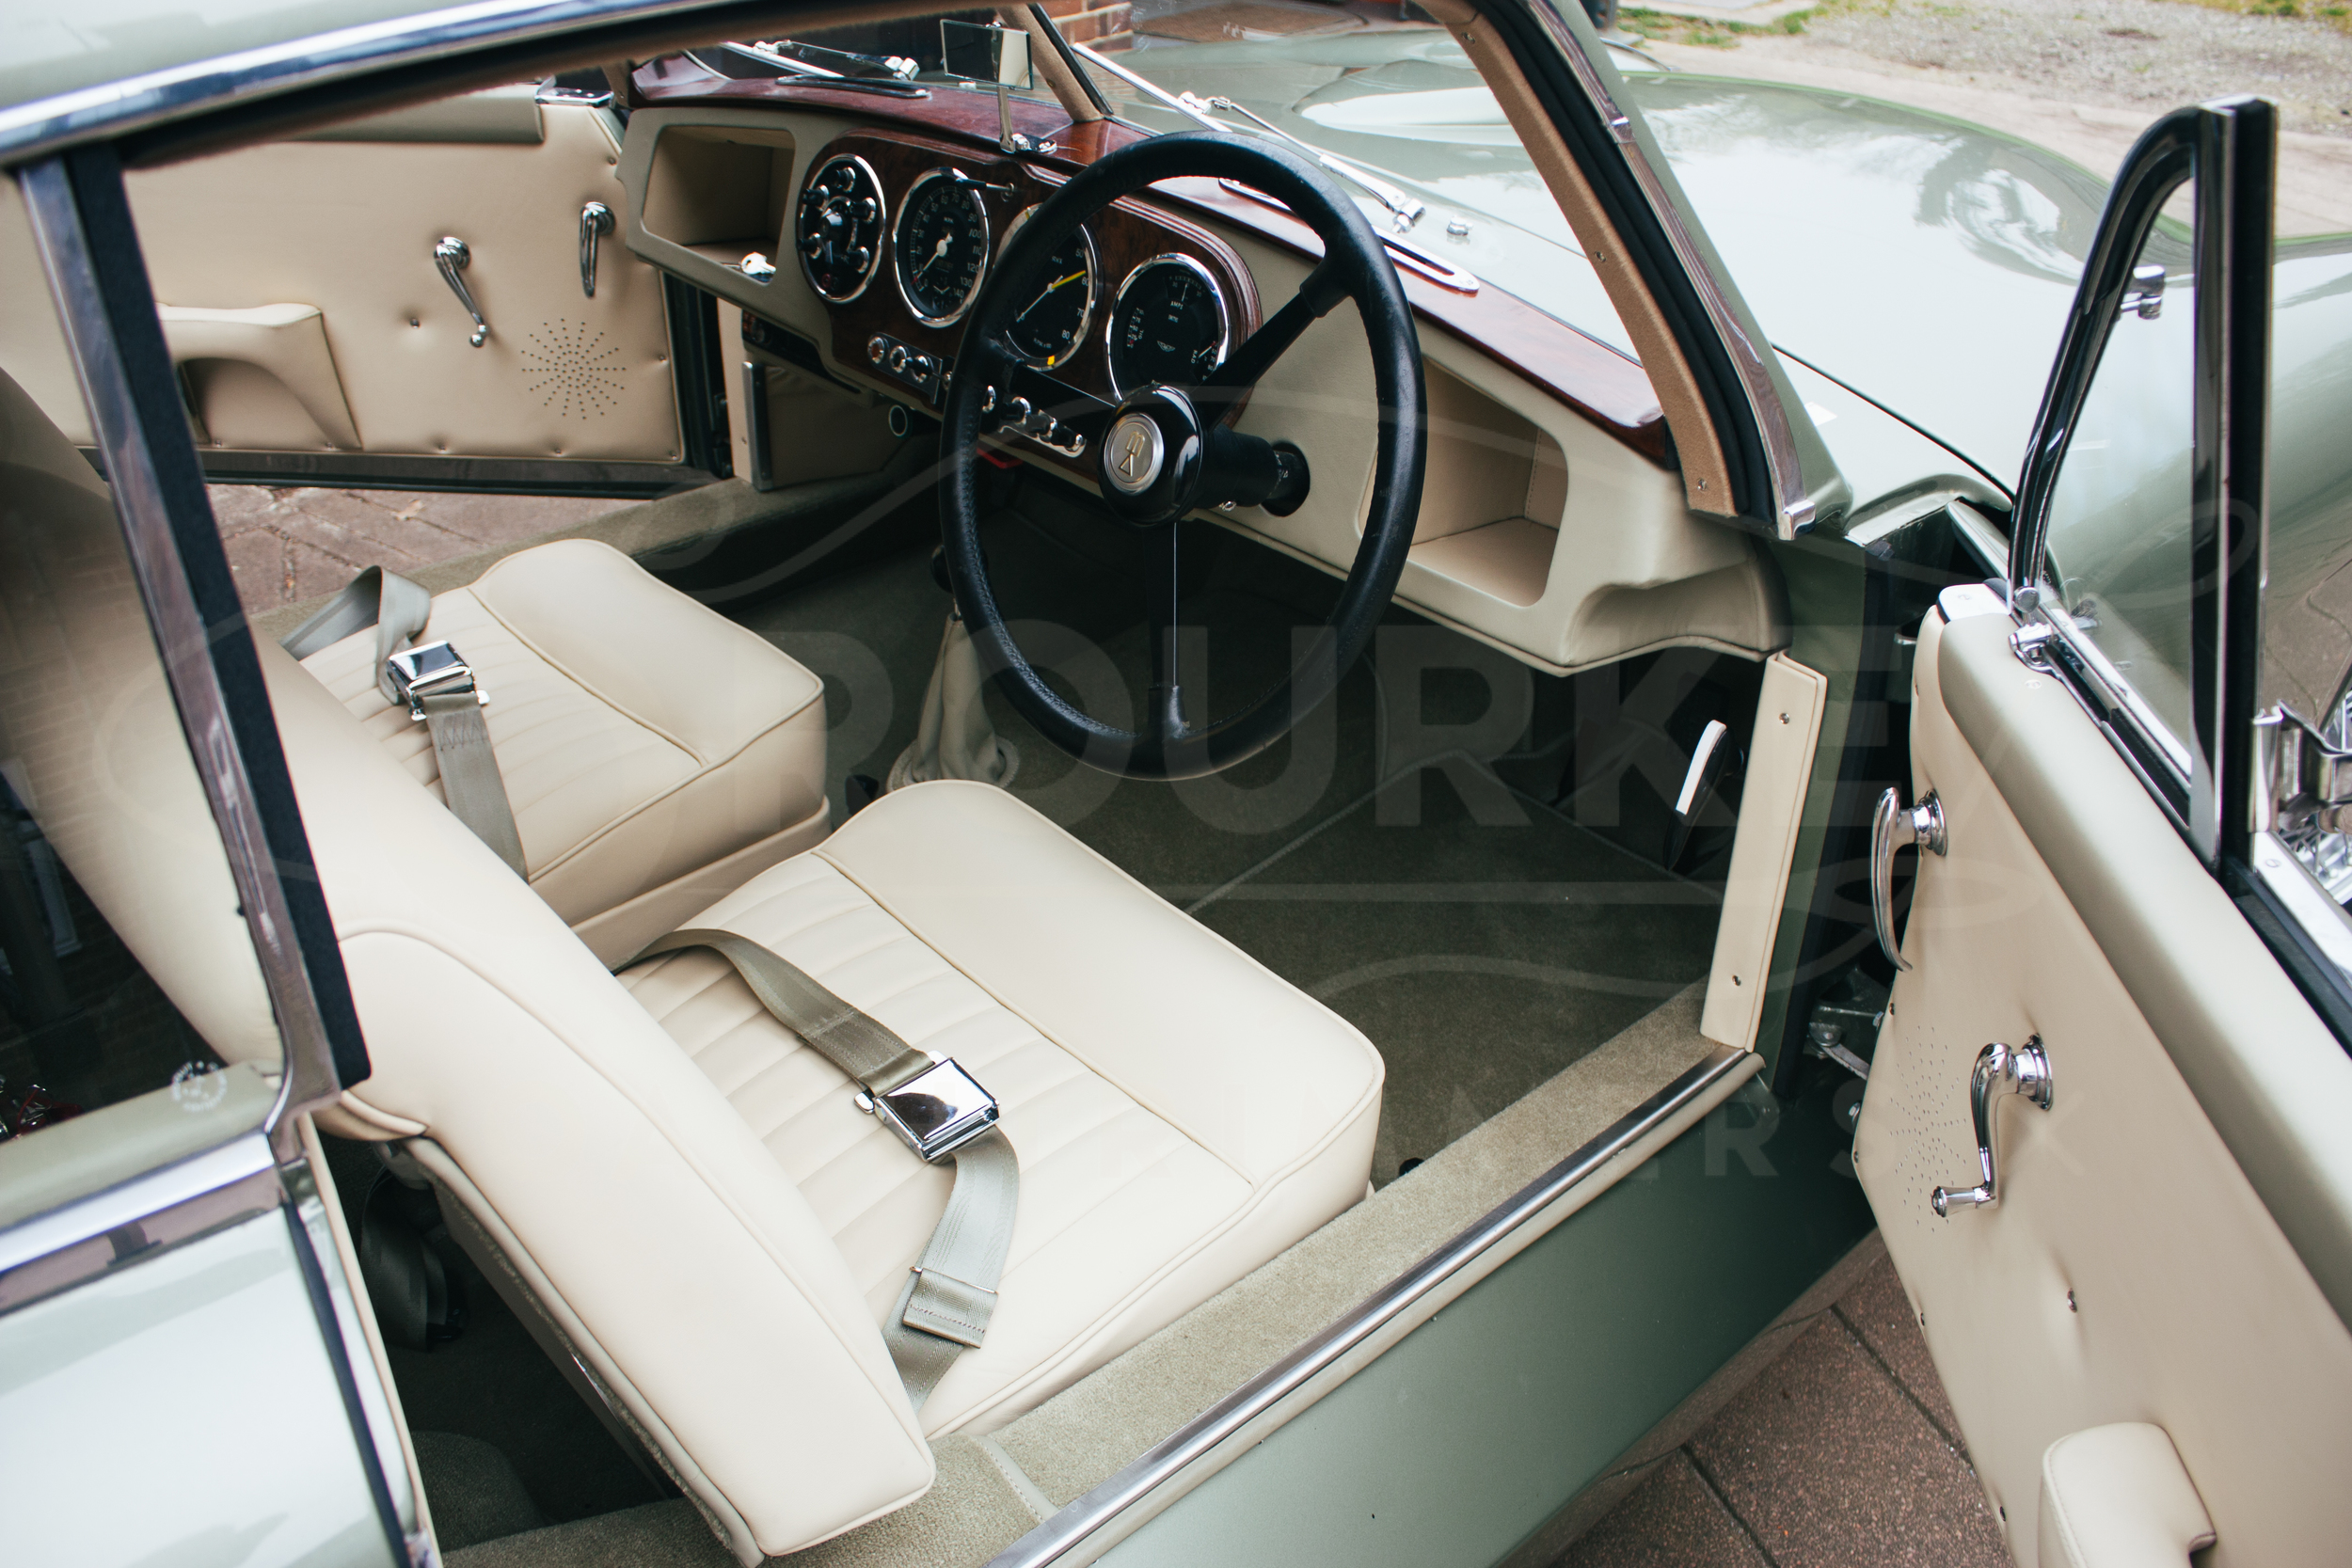 o-rourke-coachtrimmers-aston-martin-db2-5.jpg